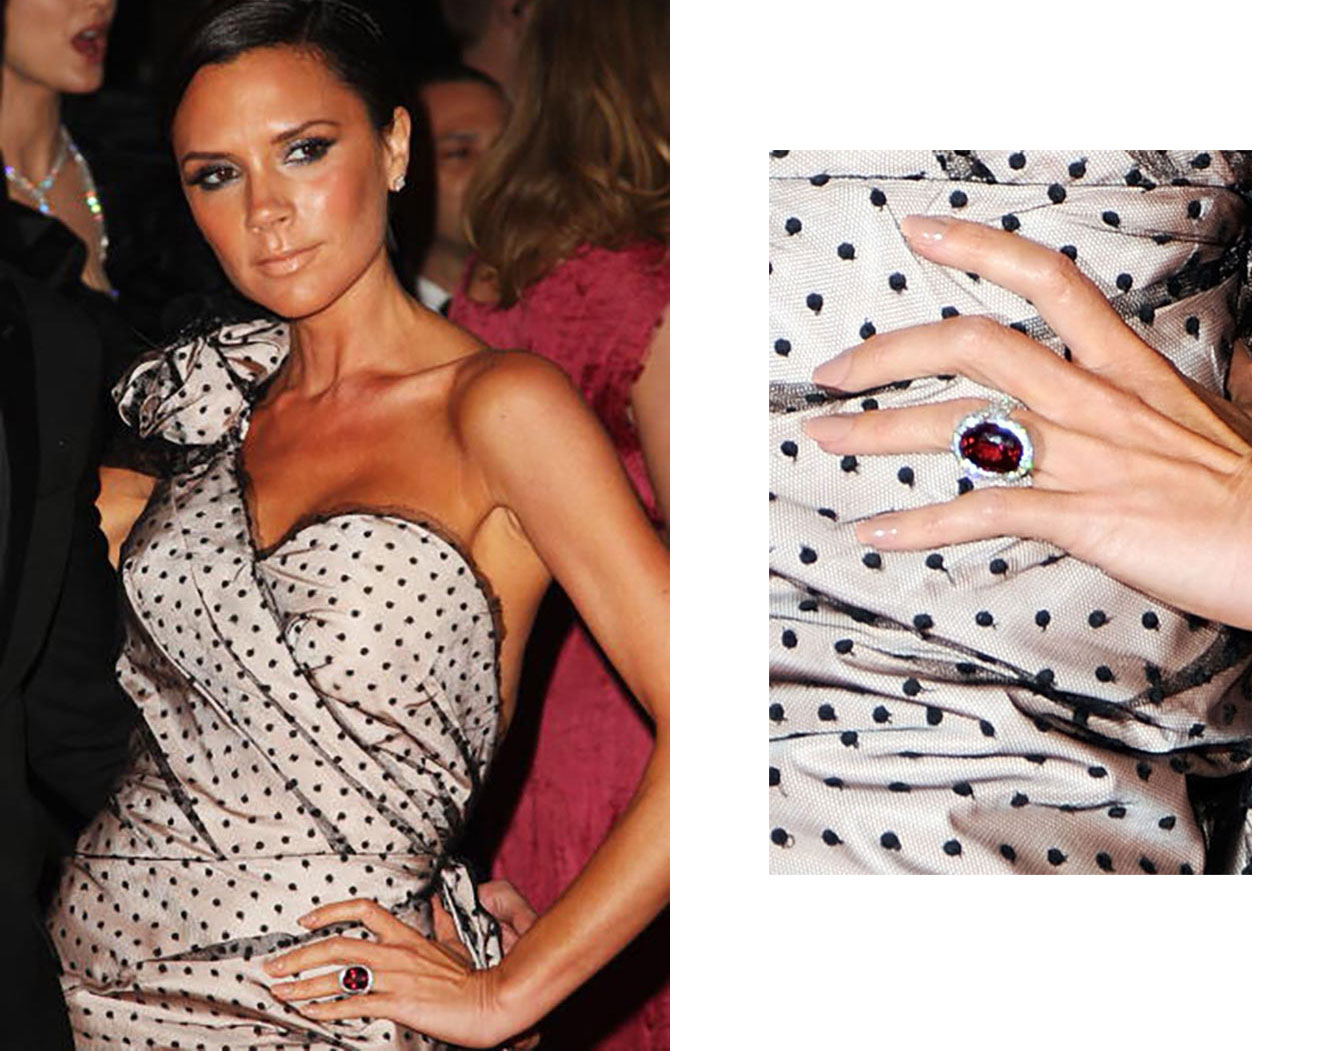 Victoria Beckham, 2009 in New York City, wearing one of her 14 engagement rings